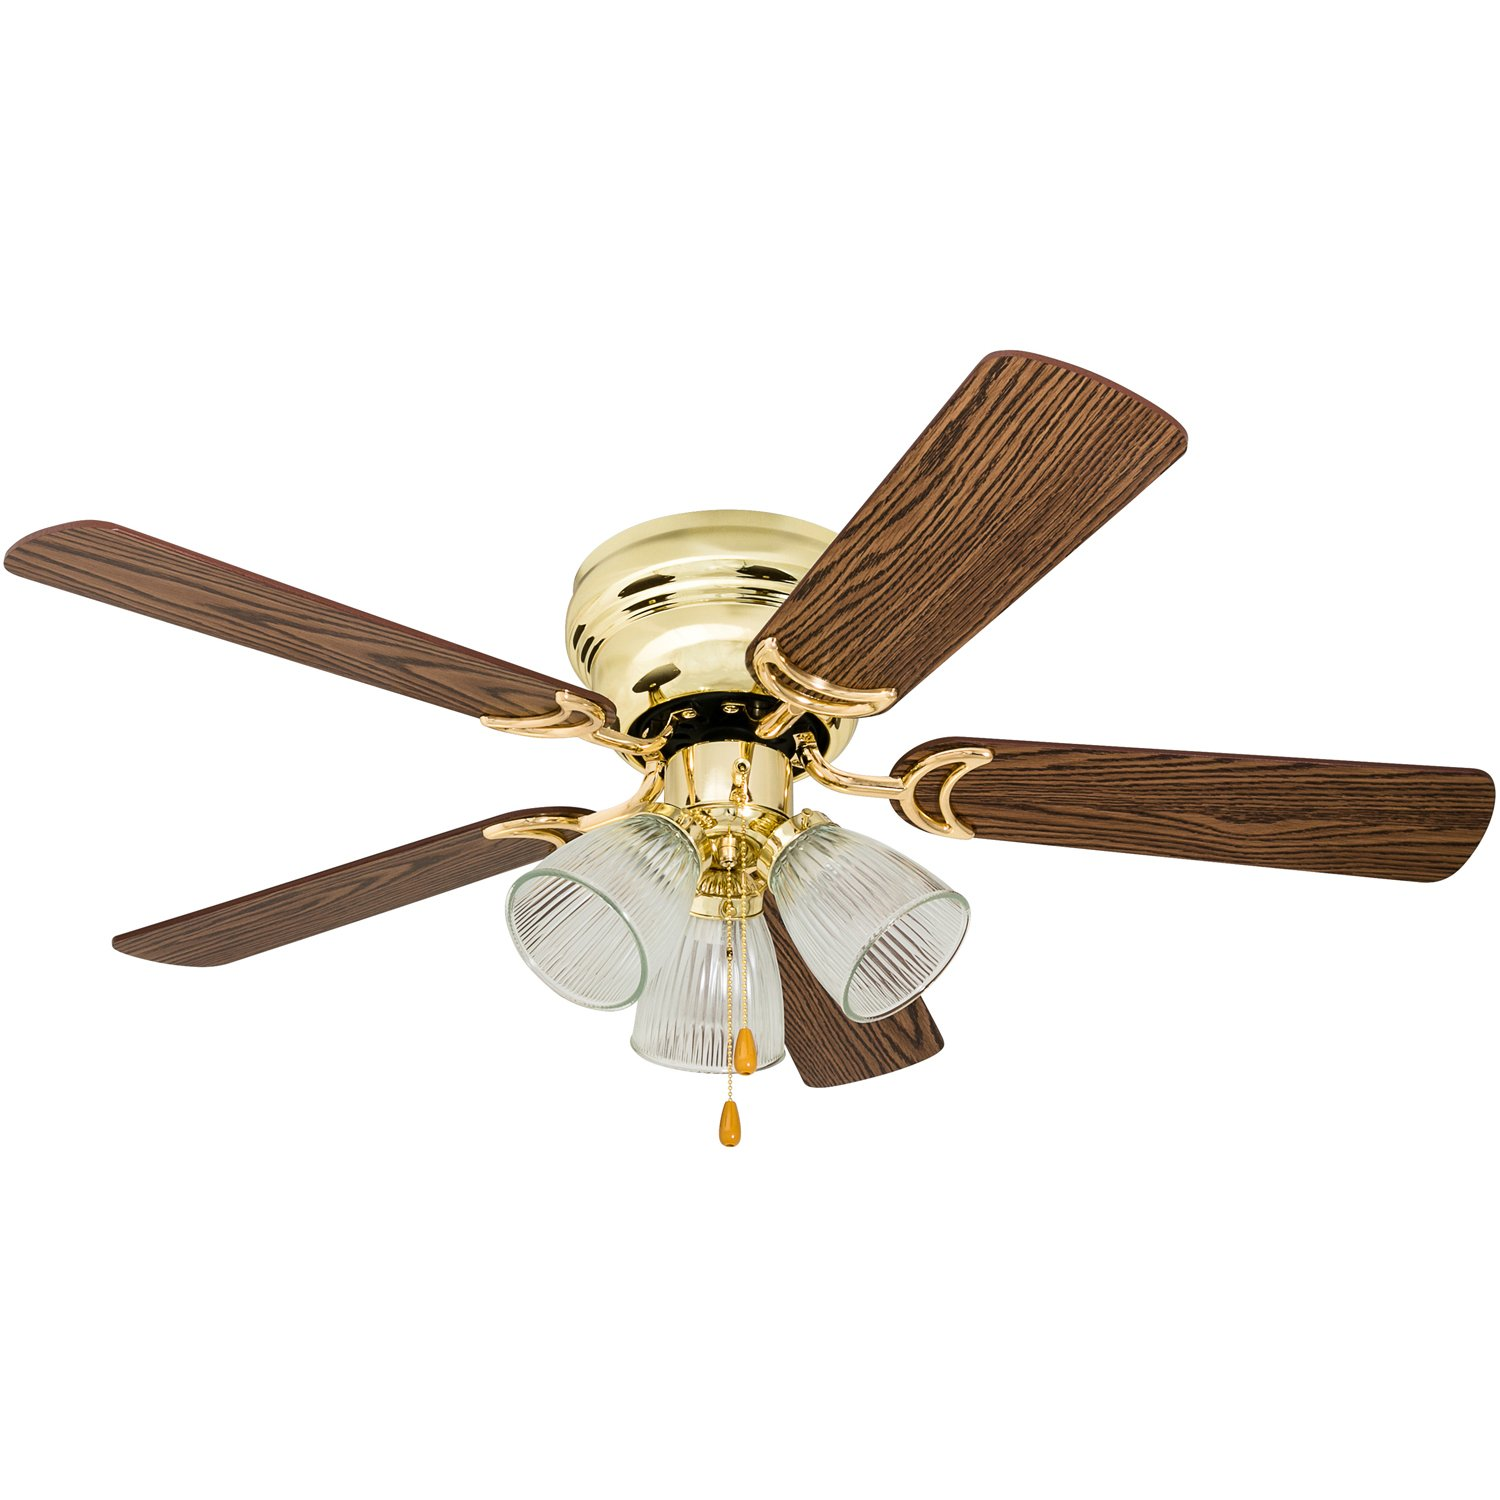 Prominence Home 50862 Whitley Hugger Ceiling Fan, 42'', Bright Brass